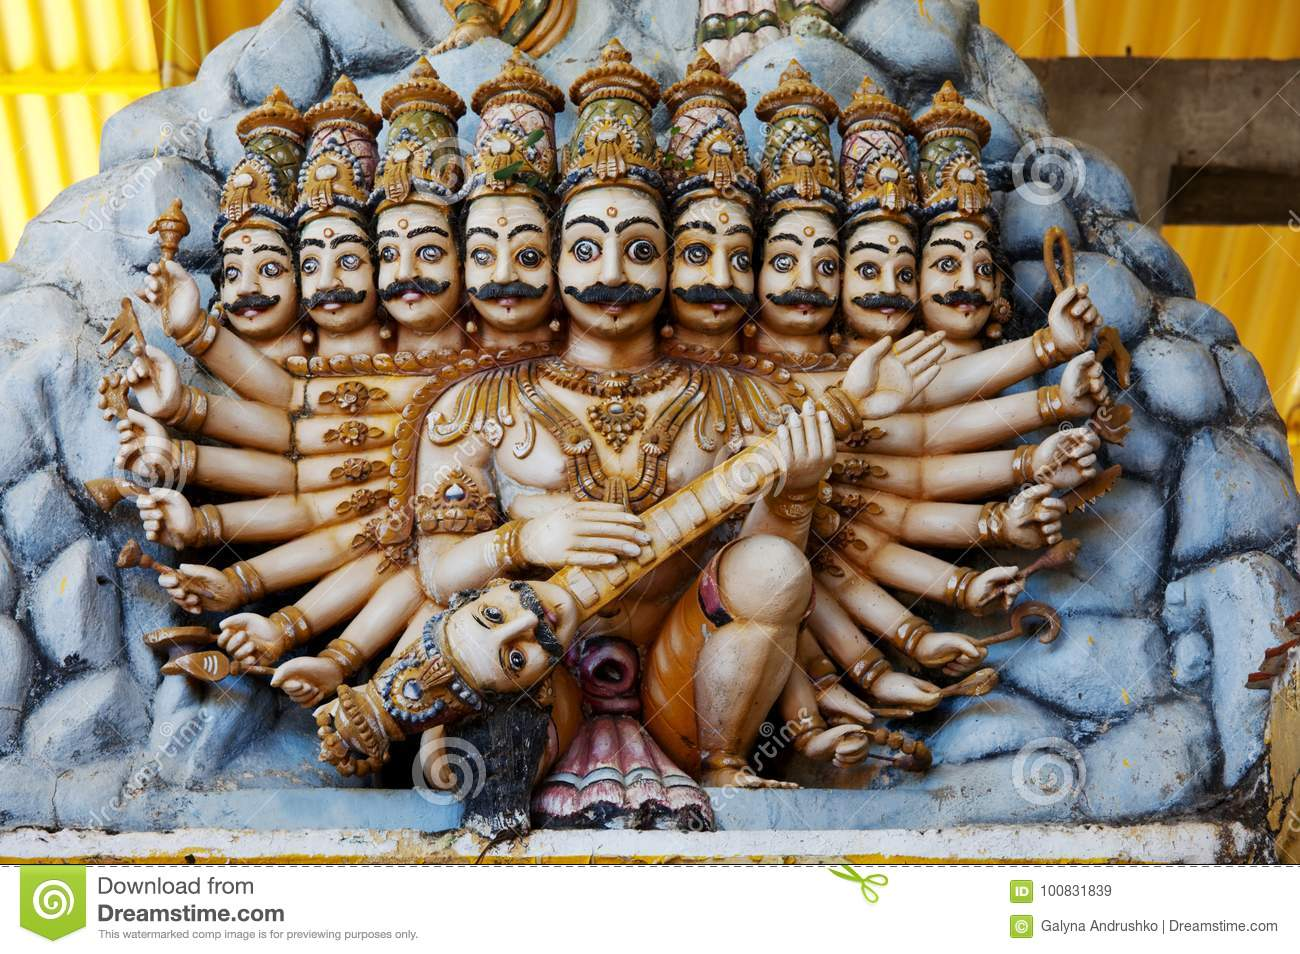 Statue on Sri Lanka stock image. Image of tower, statue - 100831839